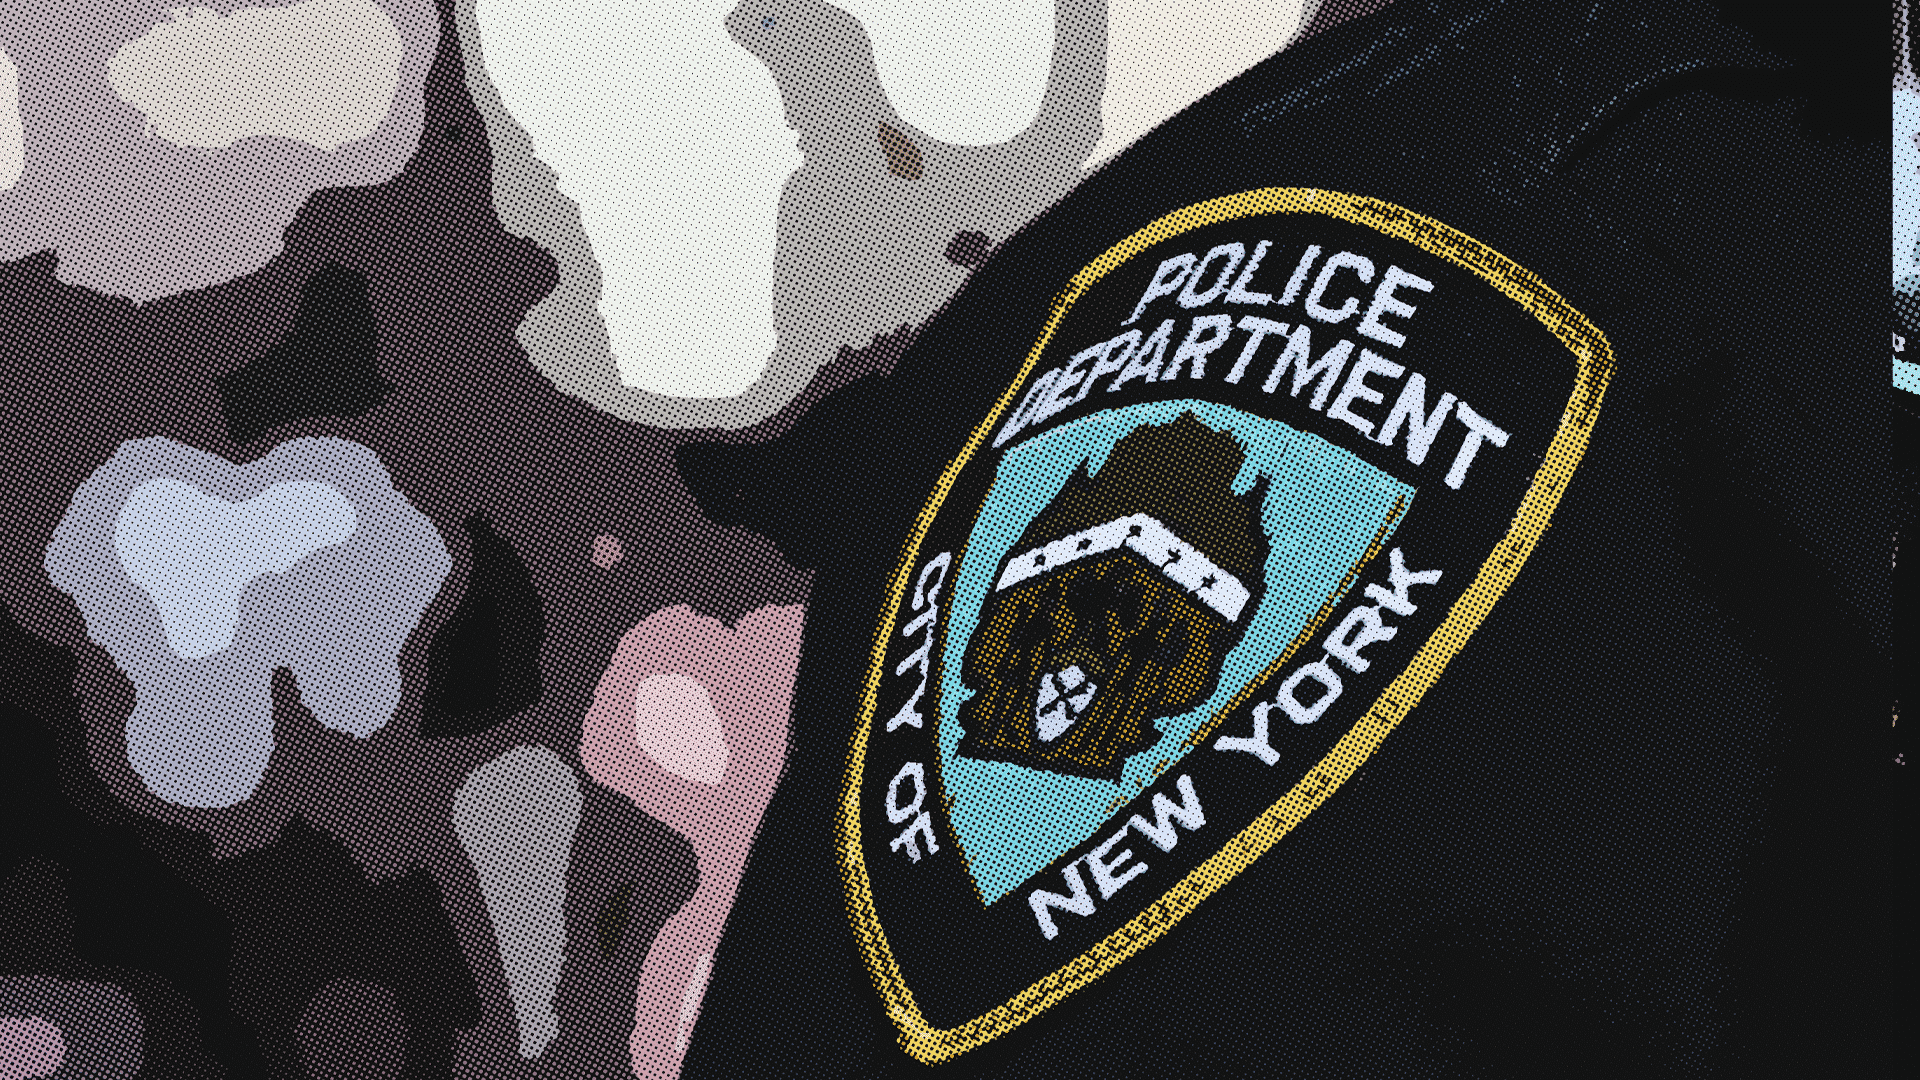 NYPD police emblem.